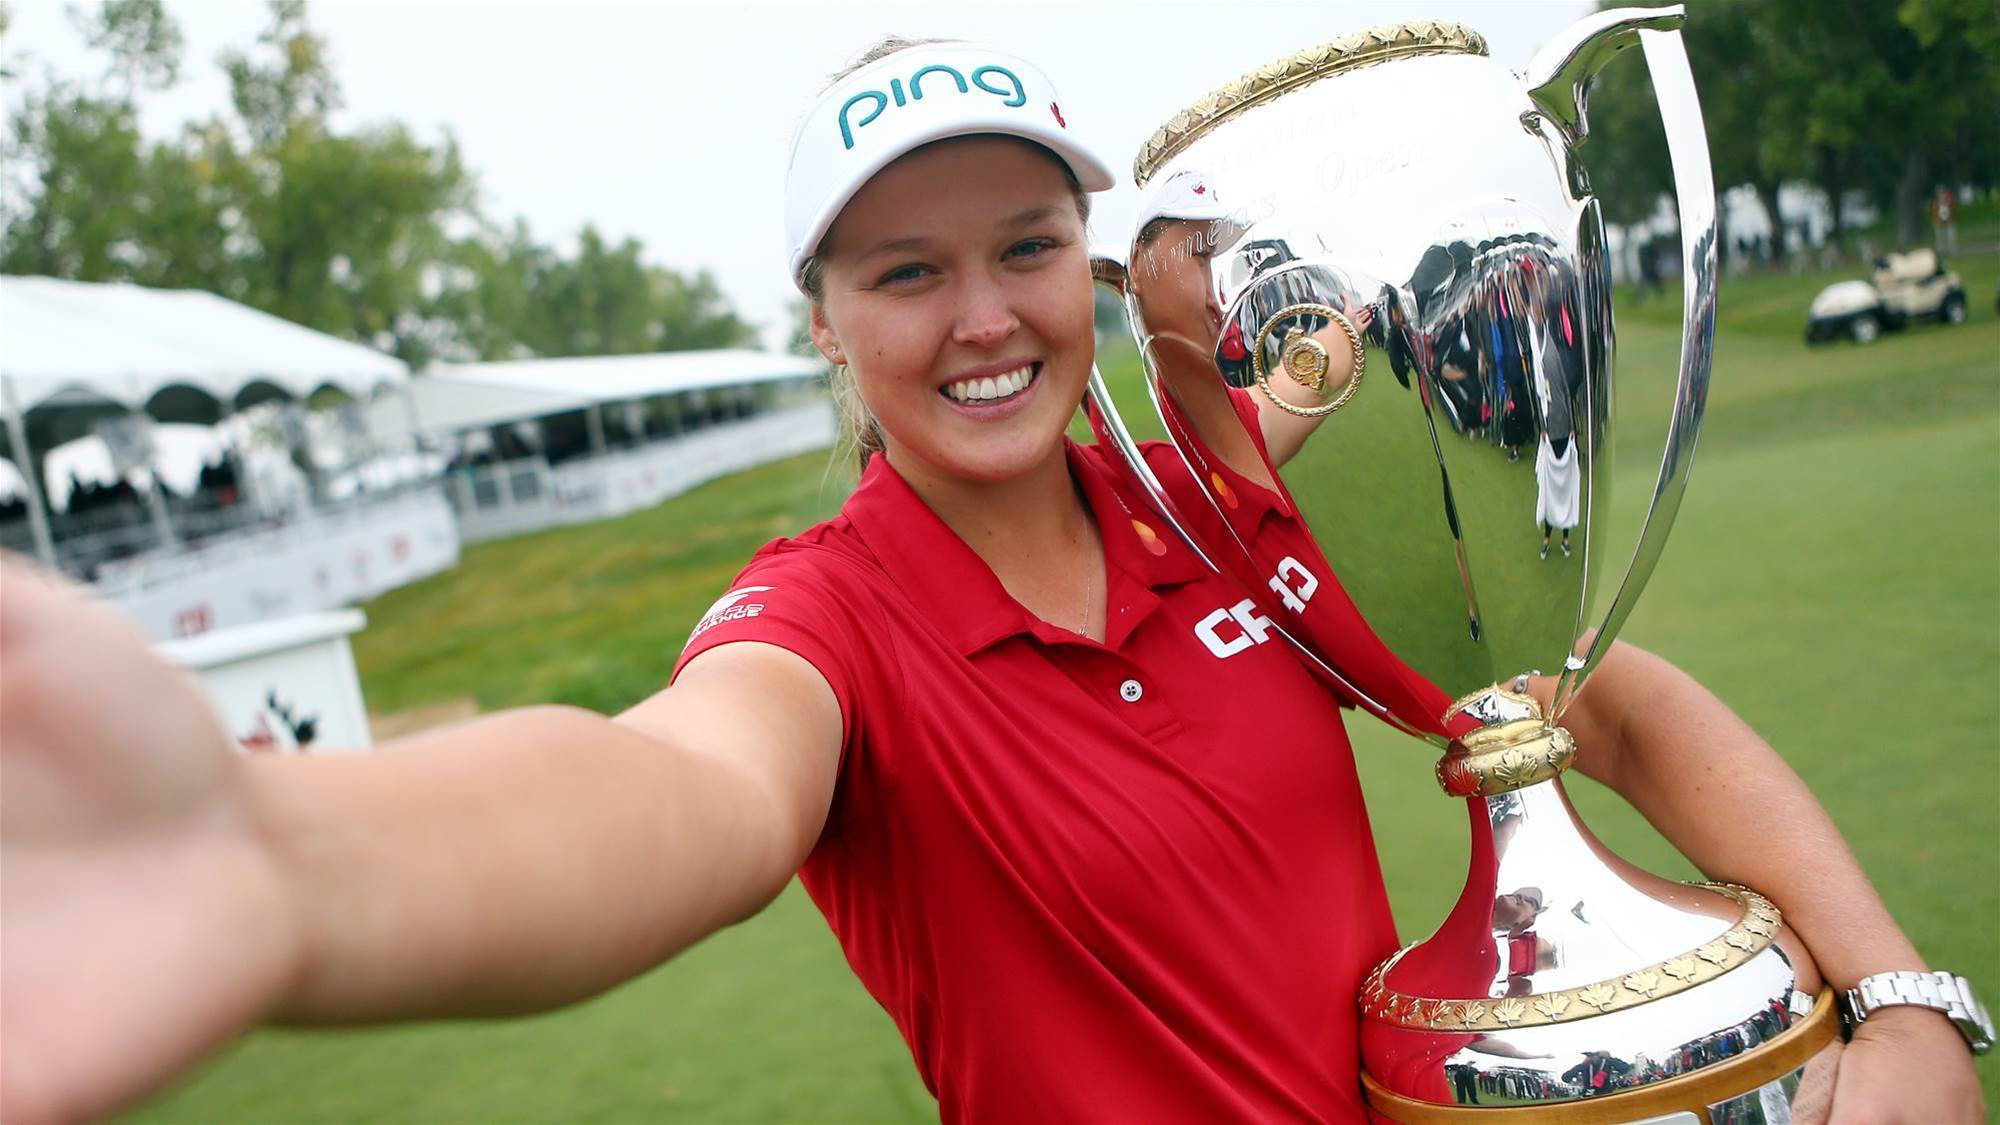 Canadian star Henderson triumphant at home Open